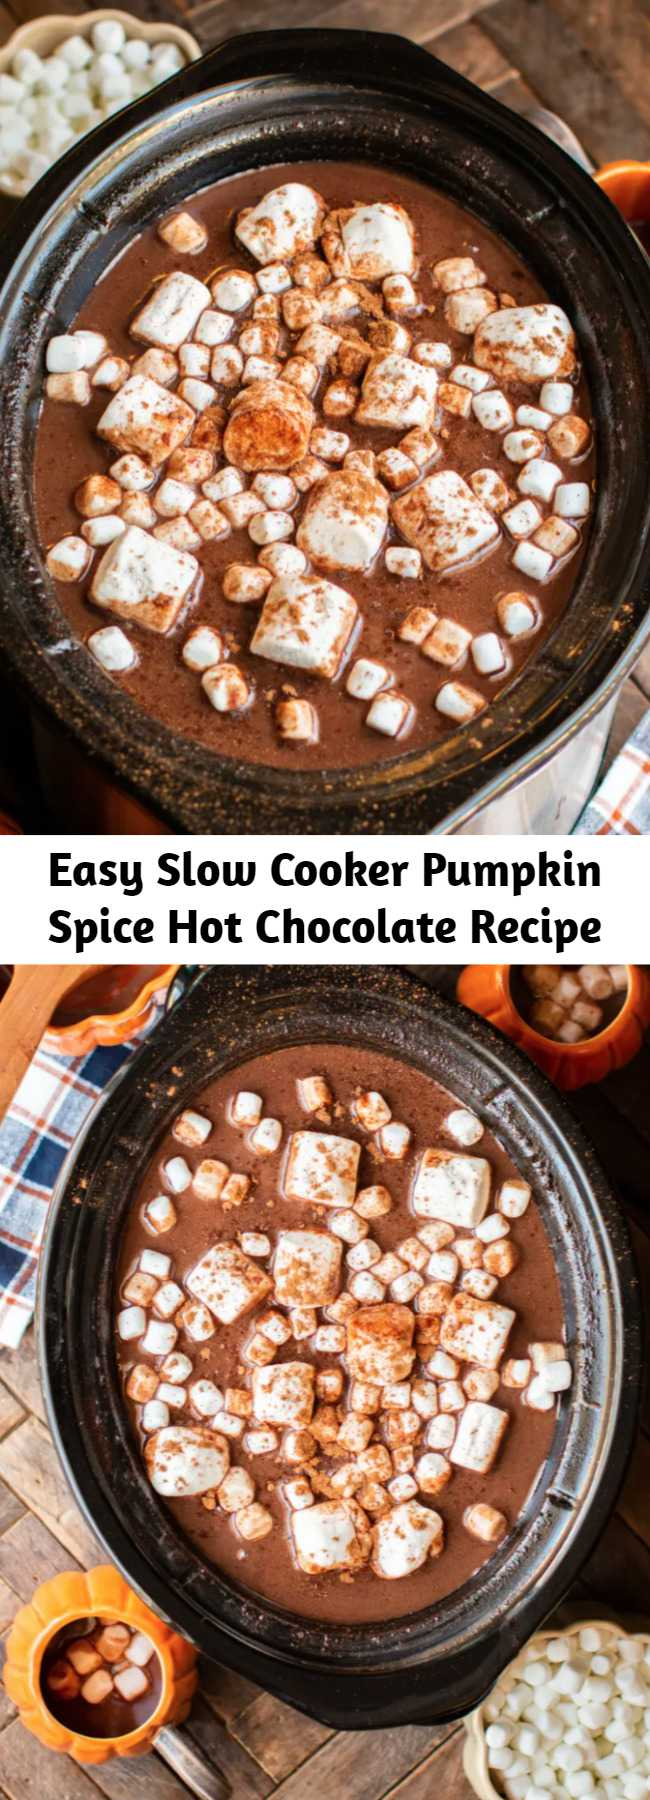 Easy Slow Cooker Pumpkin Spice Hot Chocolate Recipe - Pumpkin Spice Hot Chocolate easily made in the slow cooker! It's a delicious party drink that you and your guests will love.